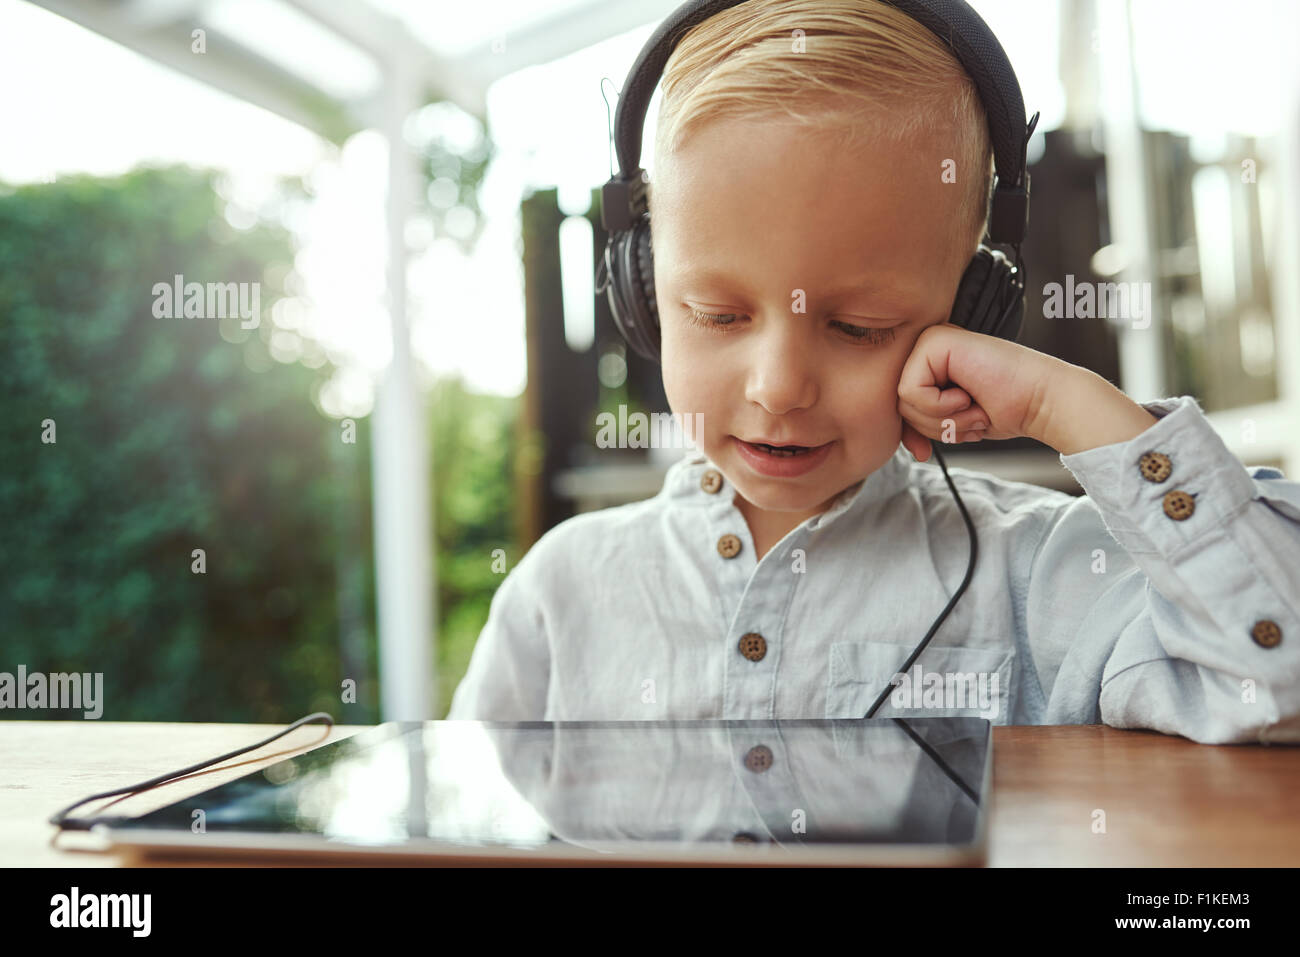 Adorable young boy sitting with a tablet computer listening to his music library with a happy smile of contentment - Stock Image